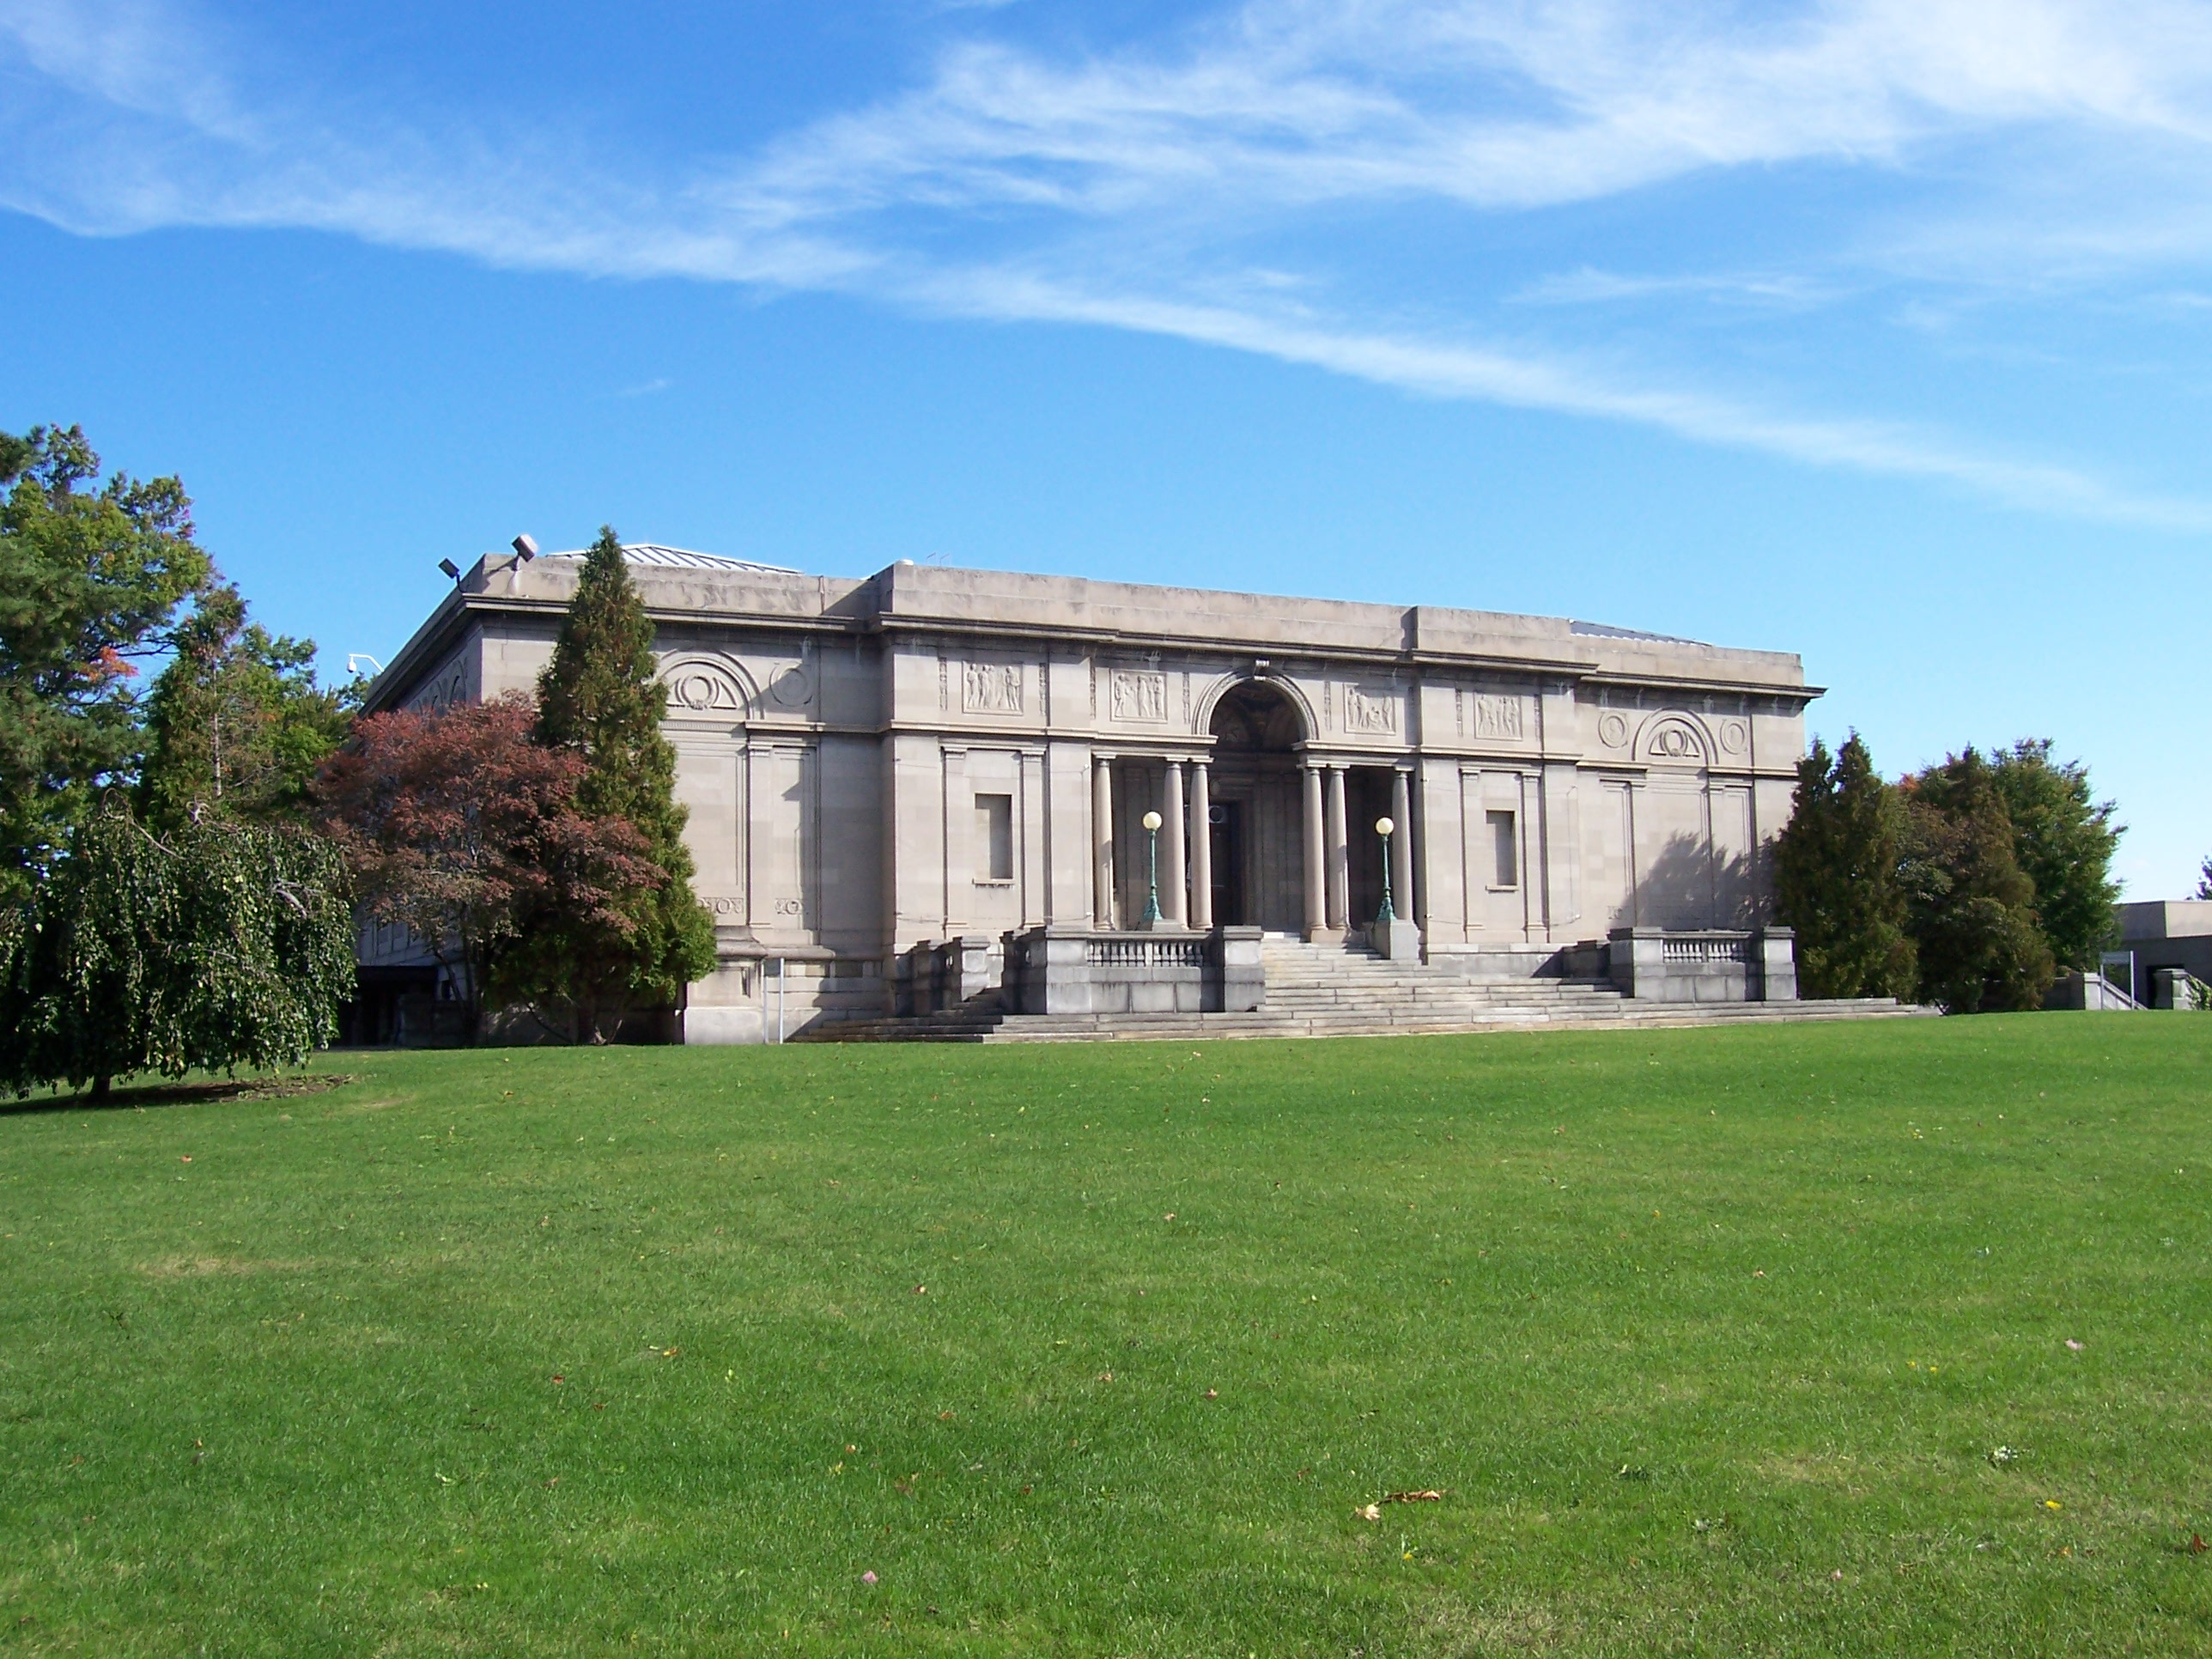 Emily Sibley Watson founded the Memorial Art Gallery in 1913 in honor of her son.